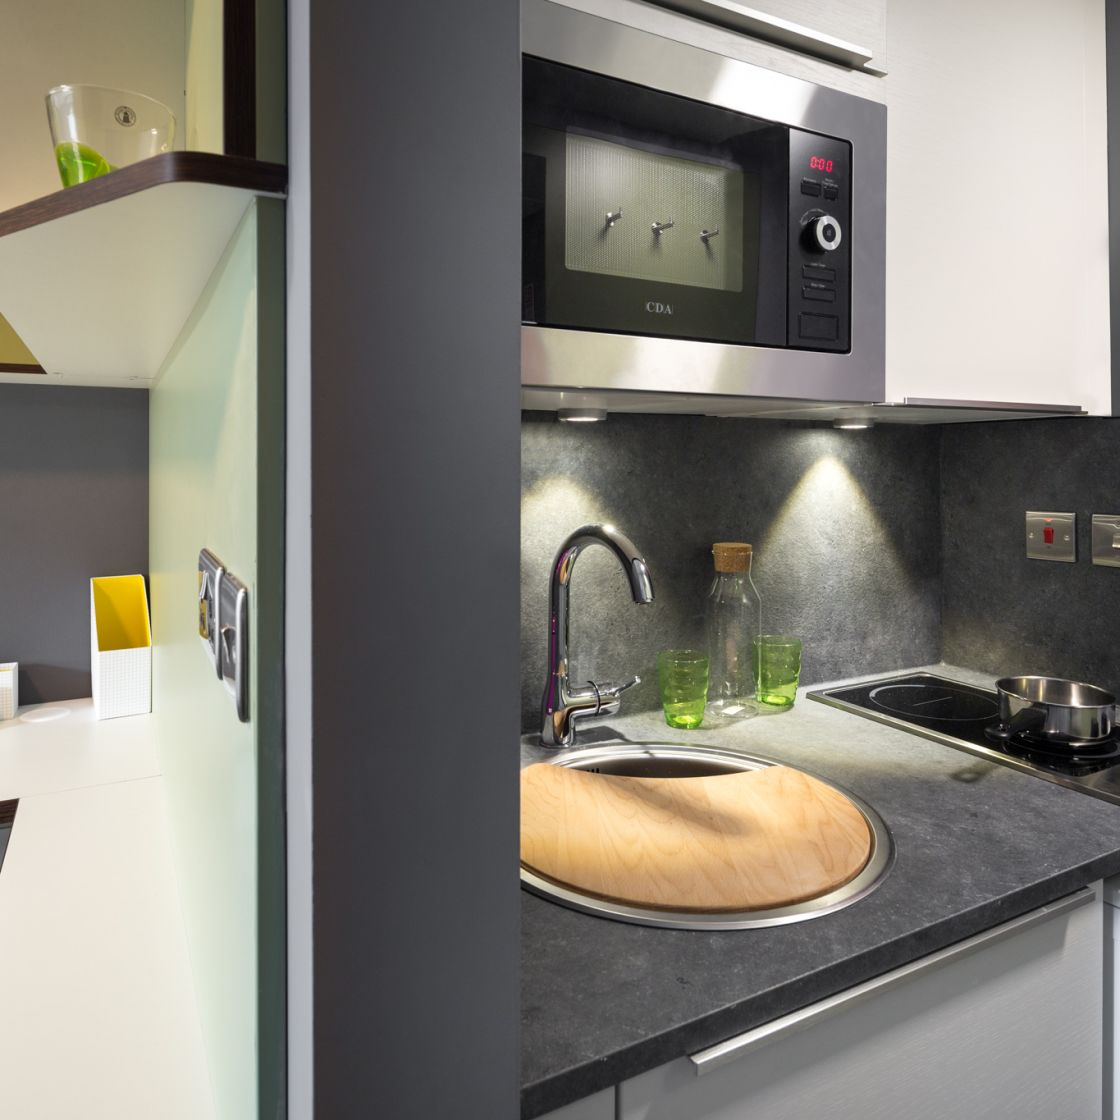 Neo Student Apartment Kitchen in Leeds. IconInc, The Glassworks.